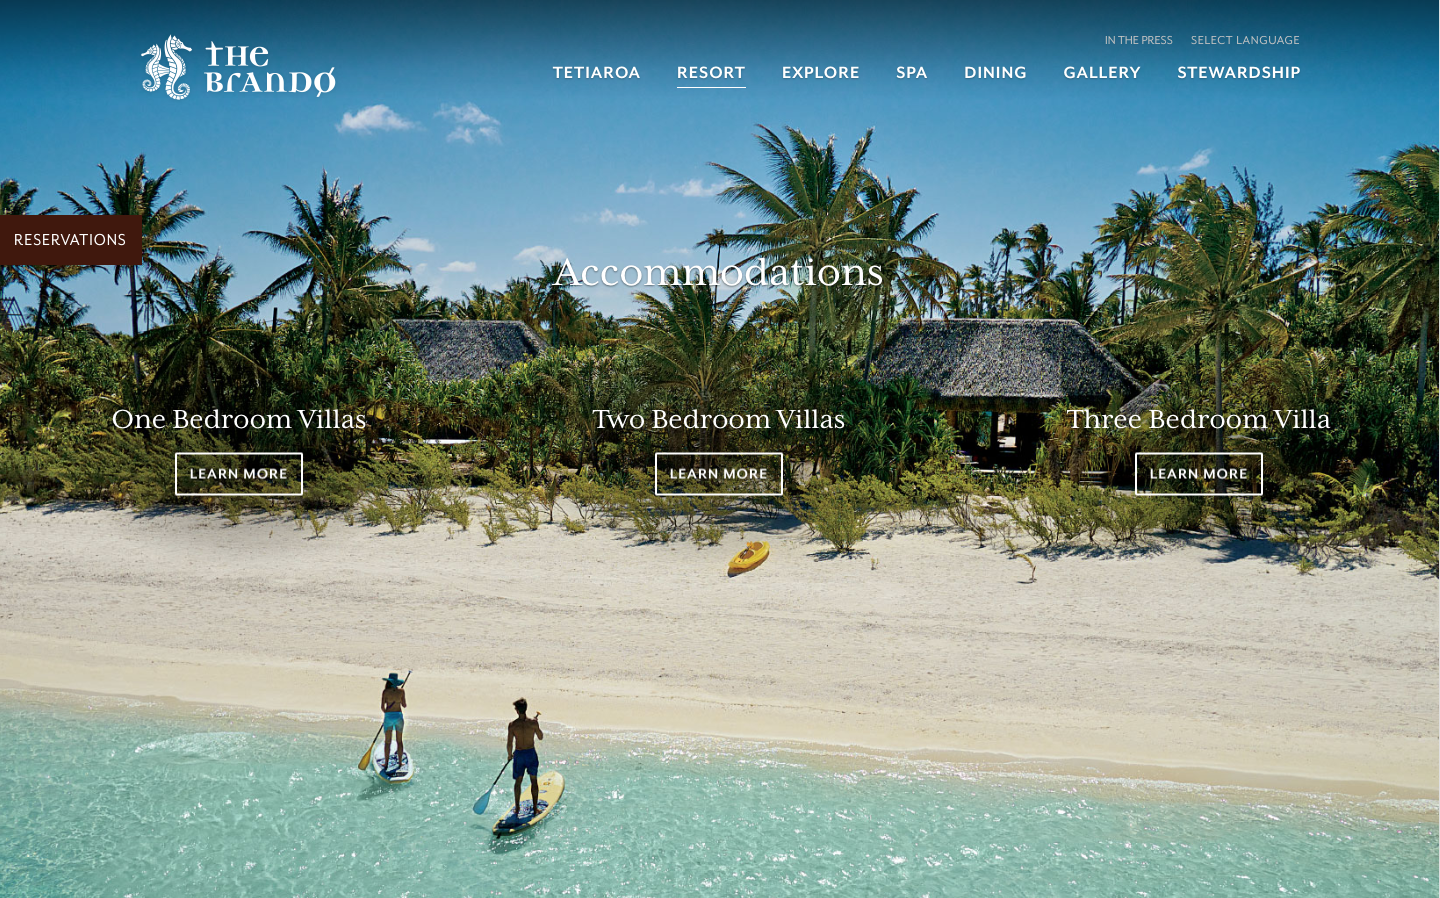 The Brando's website accommodations page